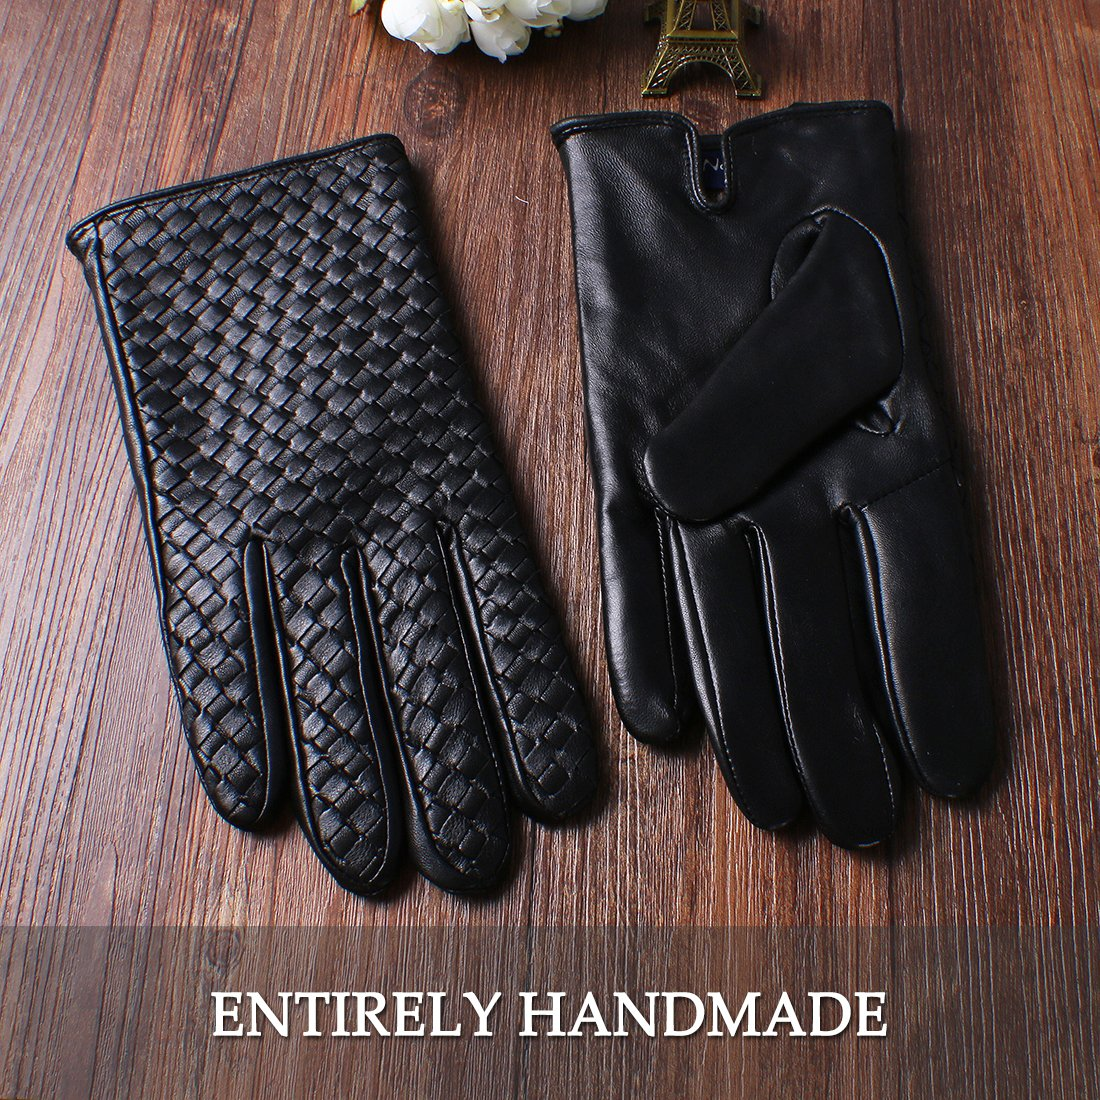 Nappaglo Mens Genuine Nappa Leather Gloves Touchscreen Hand-knitted Winter Warm Driving Cycling Mittens